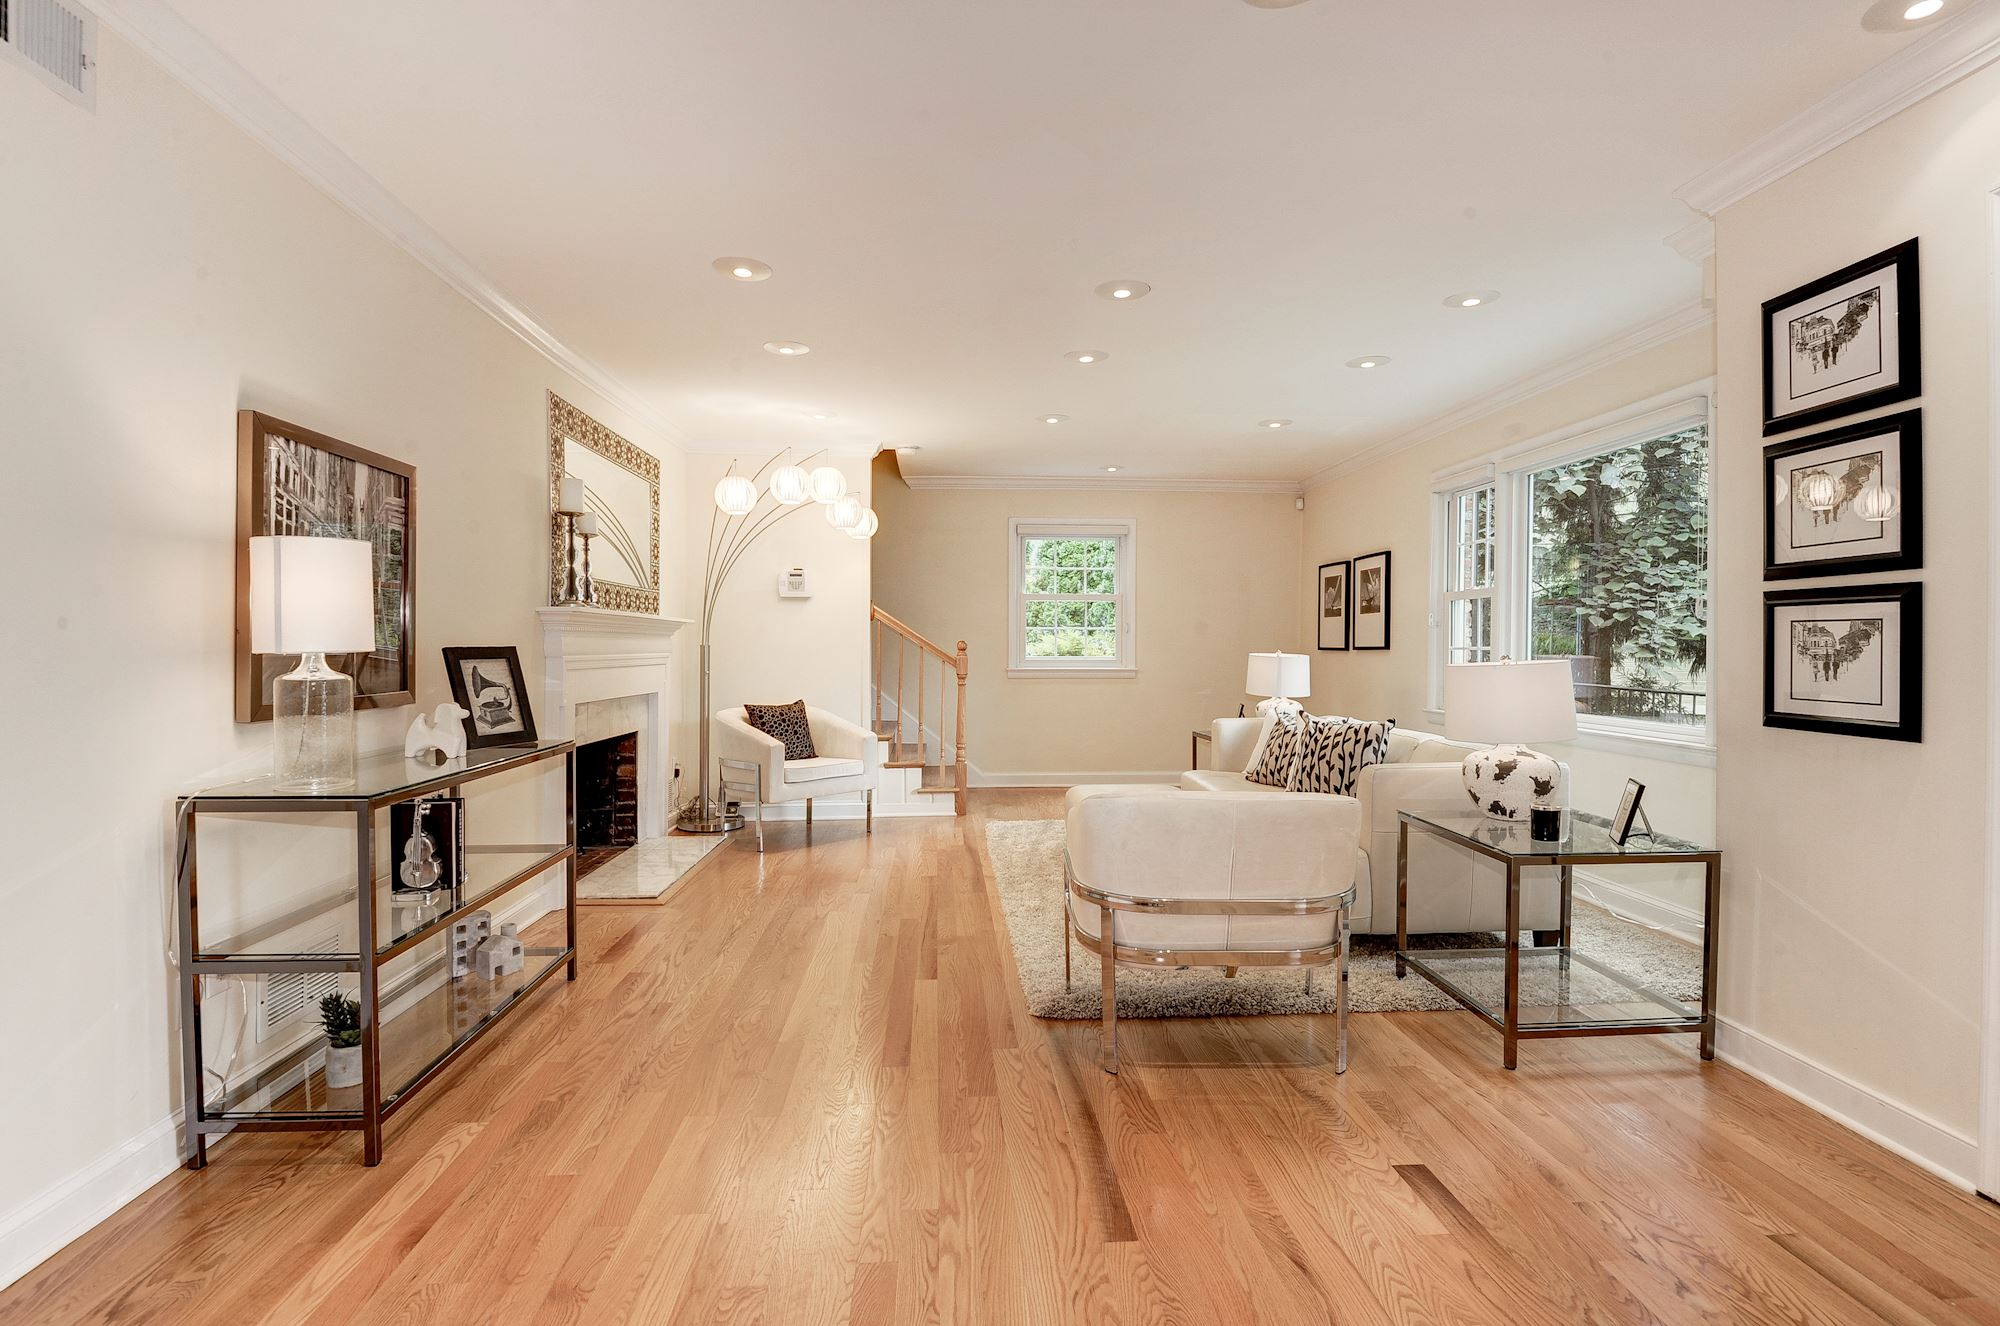 falls church s house where jazz lived sells for 870k curbed dc savory s contributions to music involved preserving jazz performances that would have been lost including performances by louis armstrong billie holiday